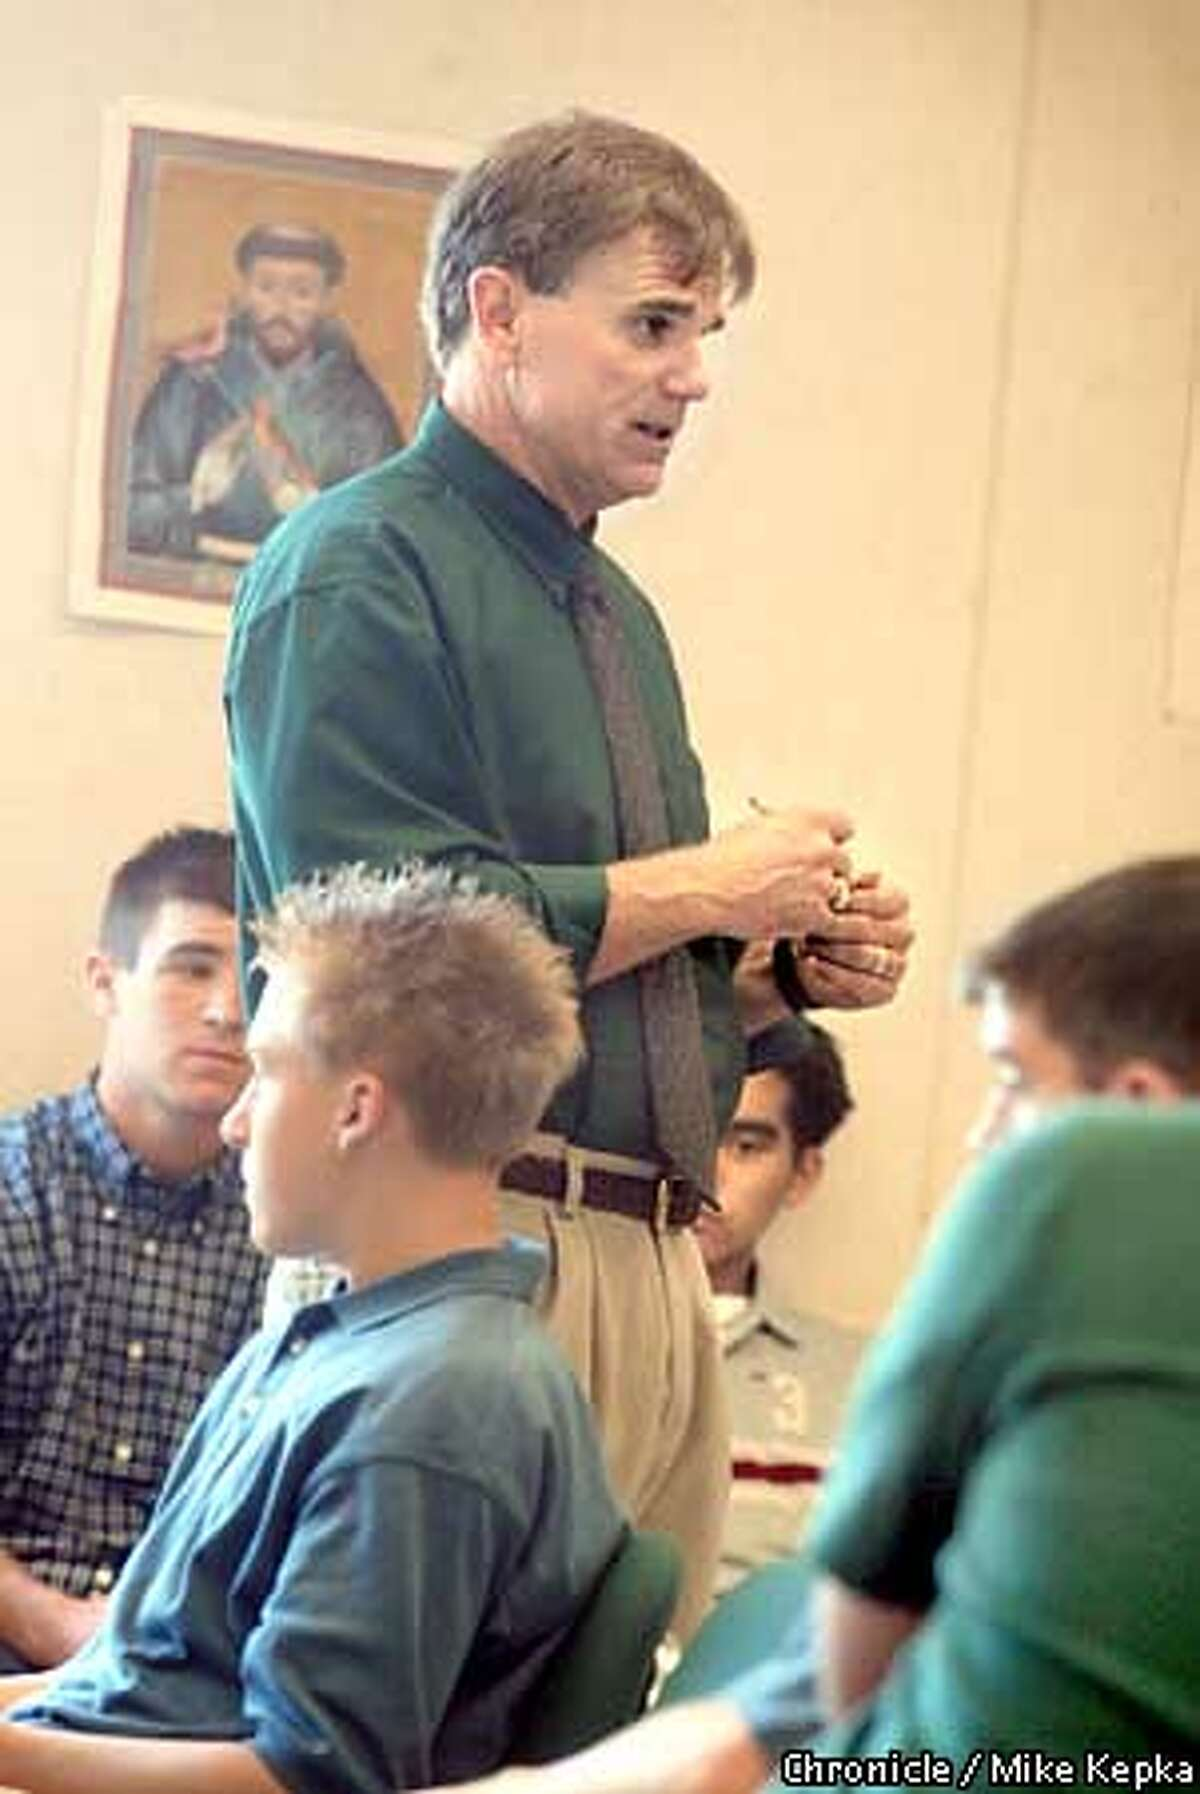 On the first day of school, De La Salle teacher and Coach Bob Ladoucer encourages a handfull of seniors taking his religion class to feel free to express themselves in his classroom. Bob Ladoucer knows the how to put together a winning combination. His team hasn't lost a game in ten years. BY MIKE KEPKA/THE CHRONICLE